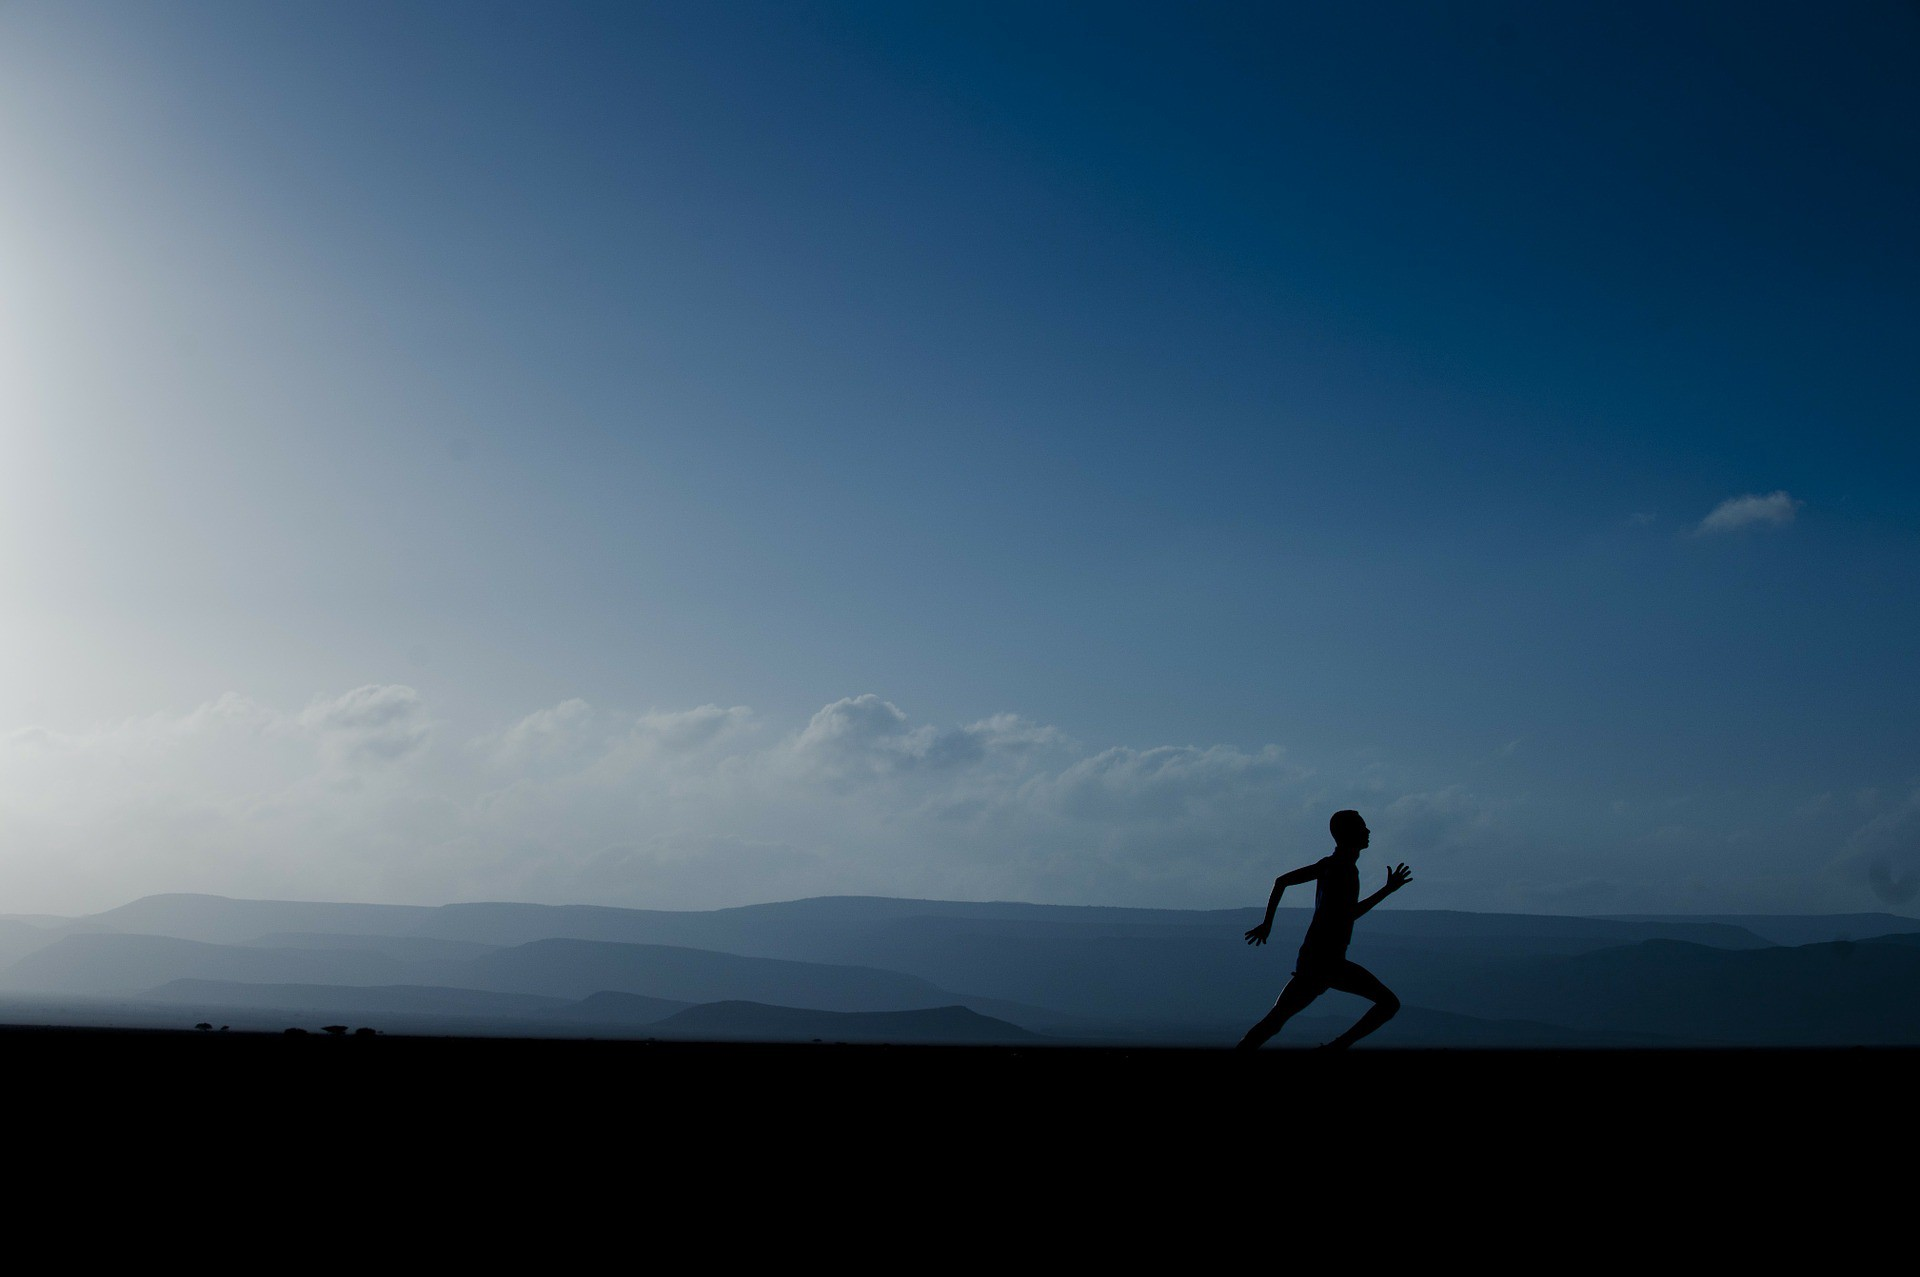 A person running in the evening against a big, blue evening sky.